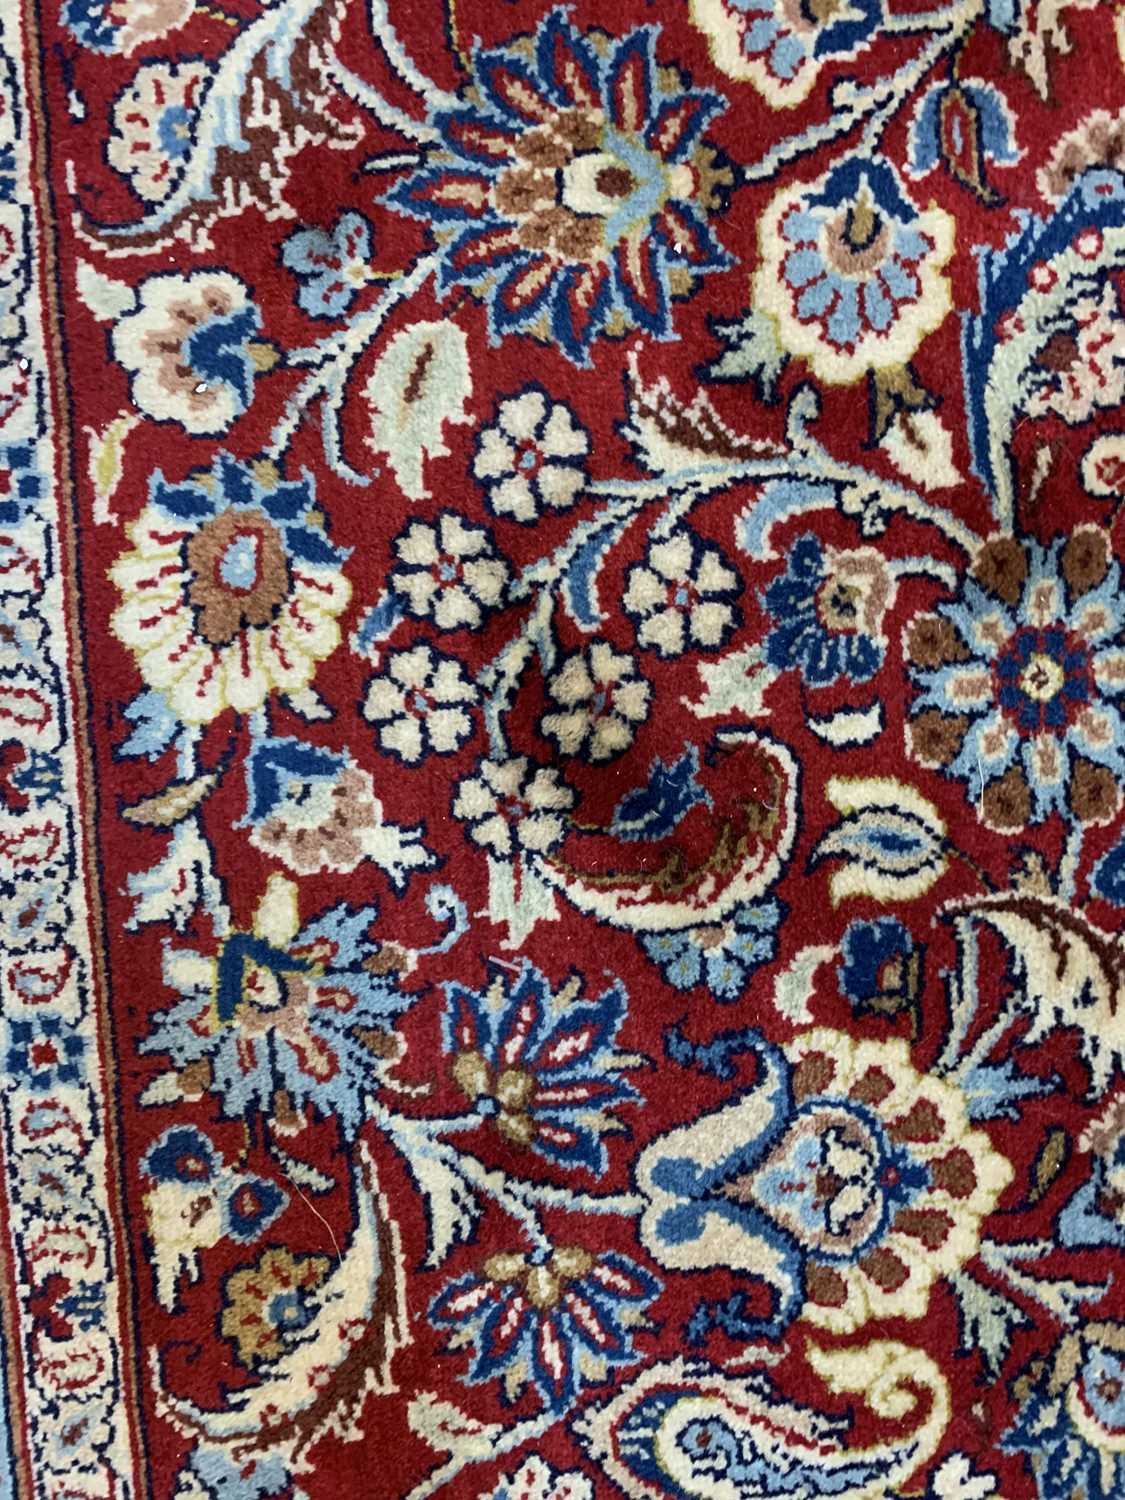 A large Persian Khorassan carpet, - Image 17 of 17